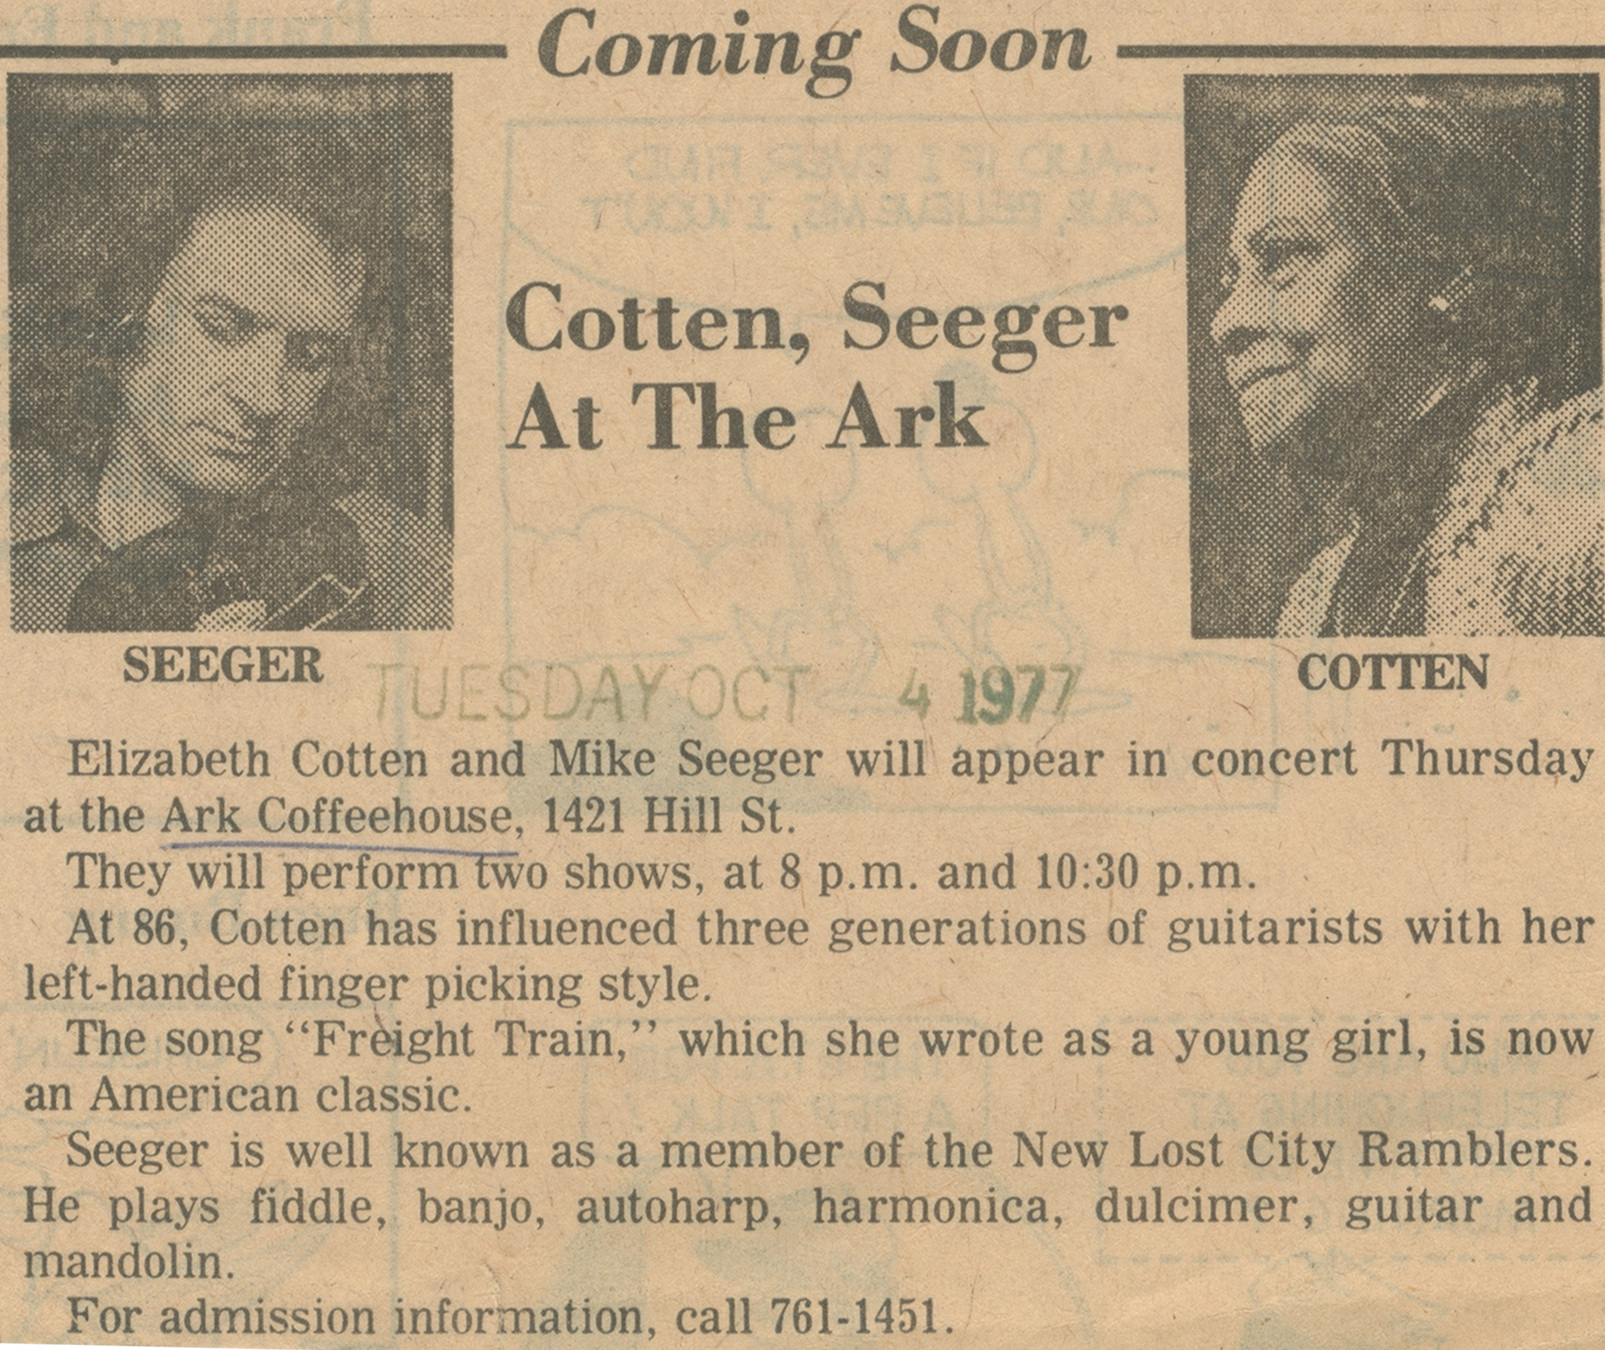 Cotten, Seeger At The Ark image